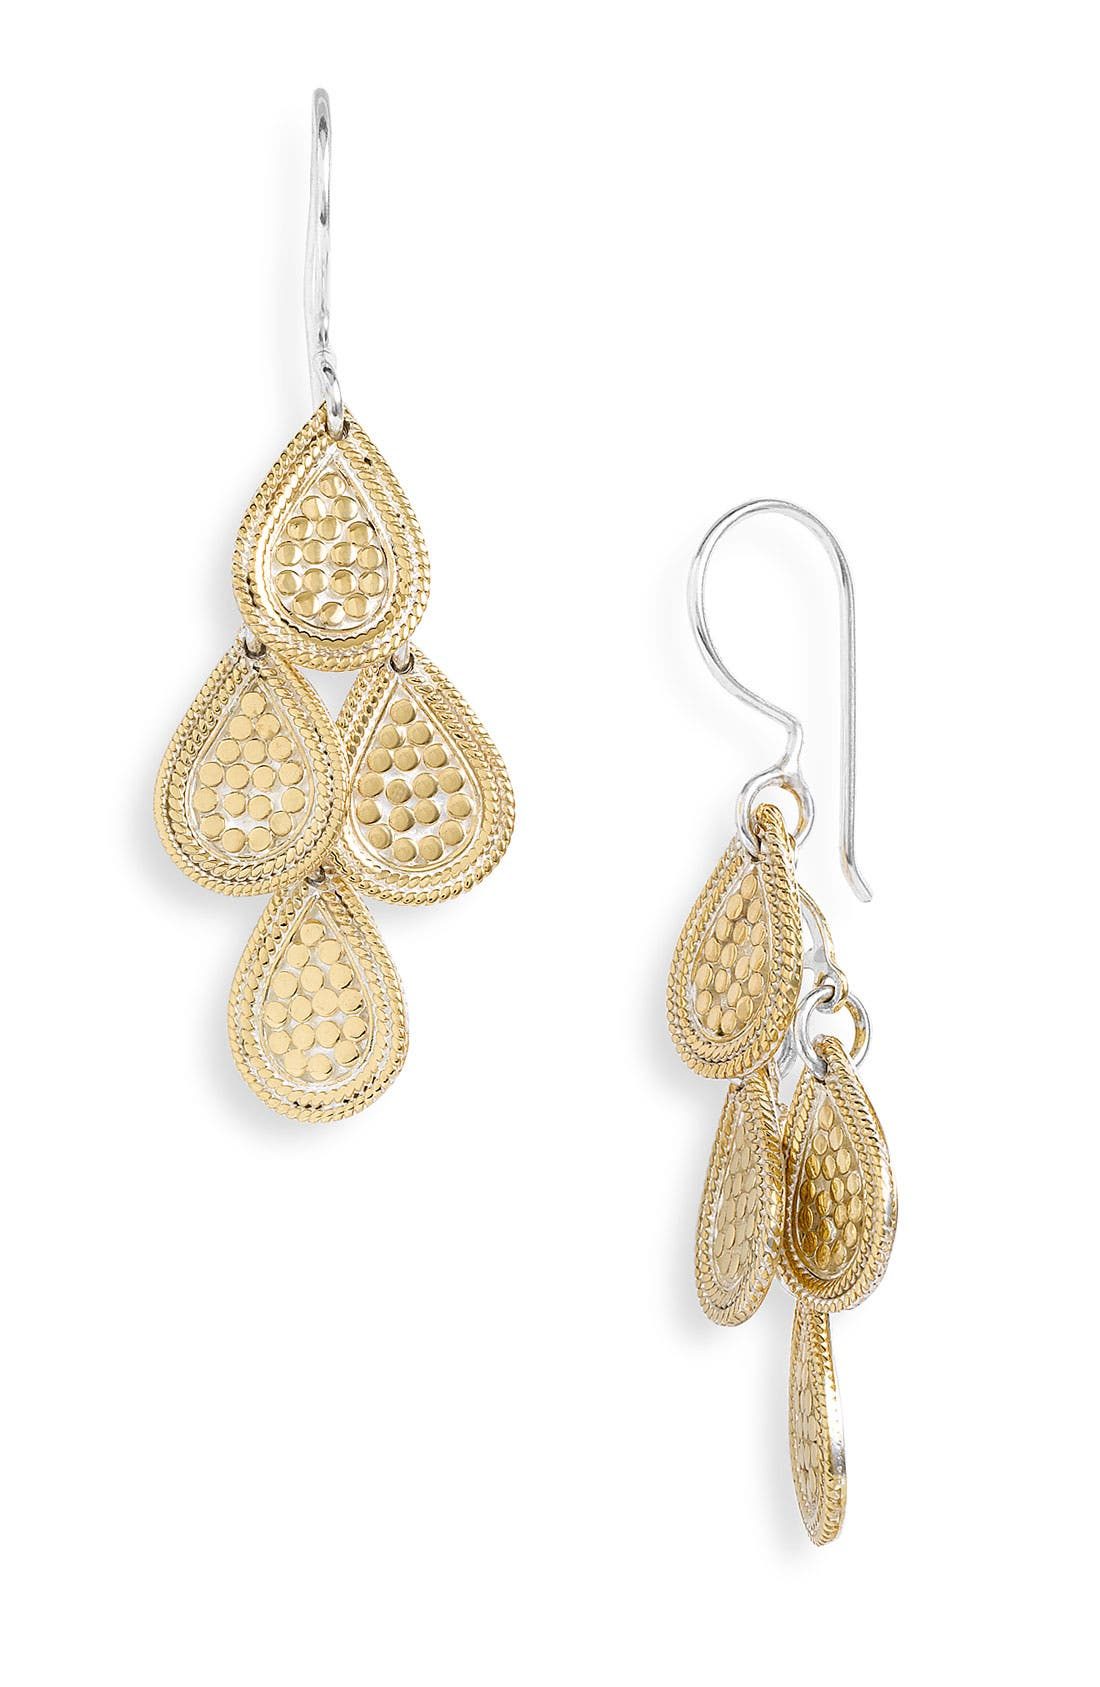 'Gili' Chandelier Earrings,                         Main,                         color, Gold/ Silver